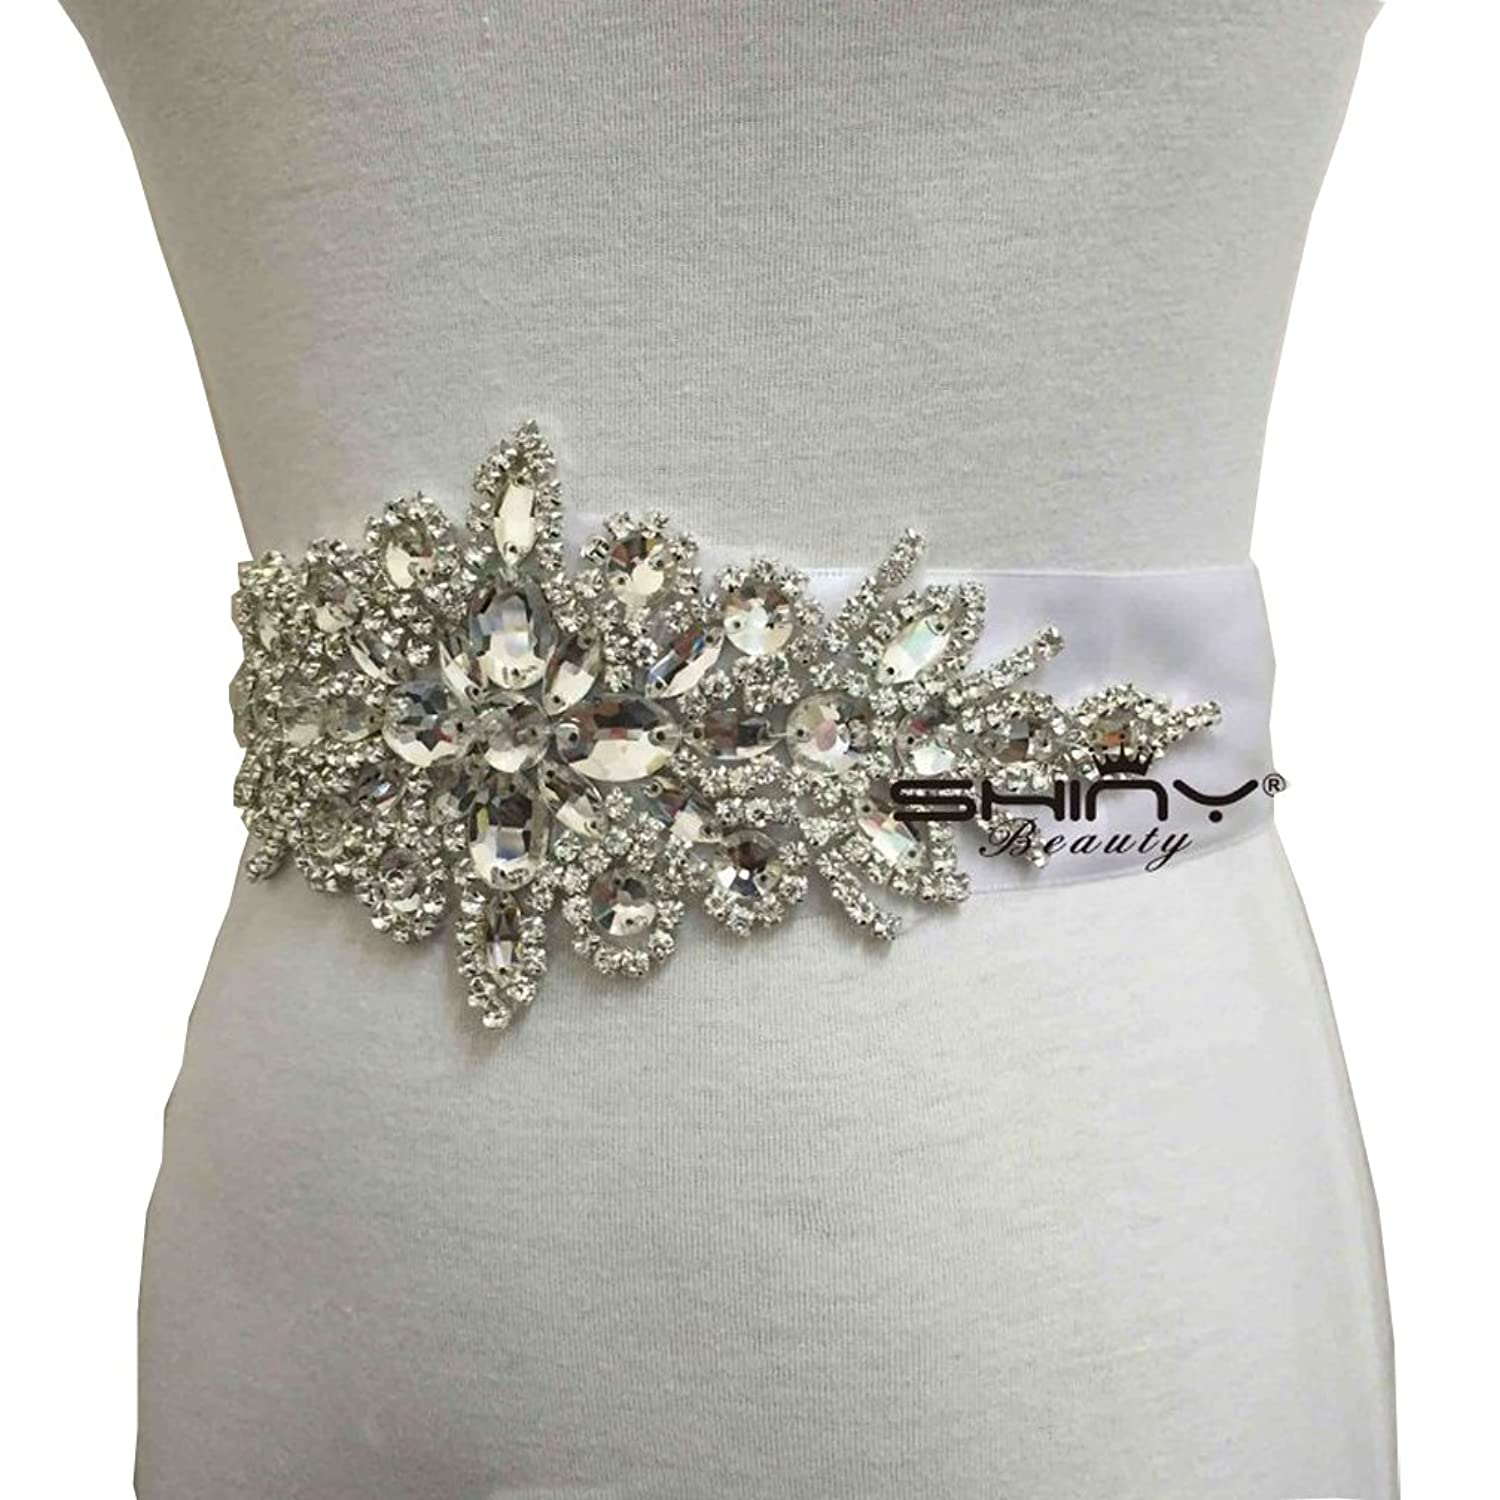 Shiny Beauty 2017 Wedding dress crystal beaded embellishment sash belt